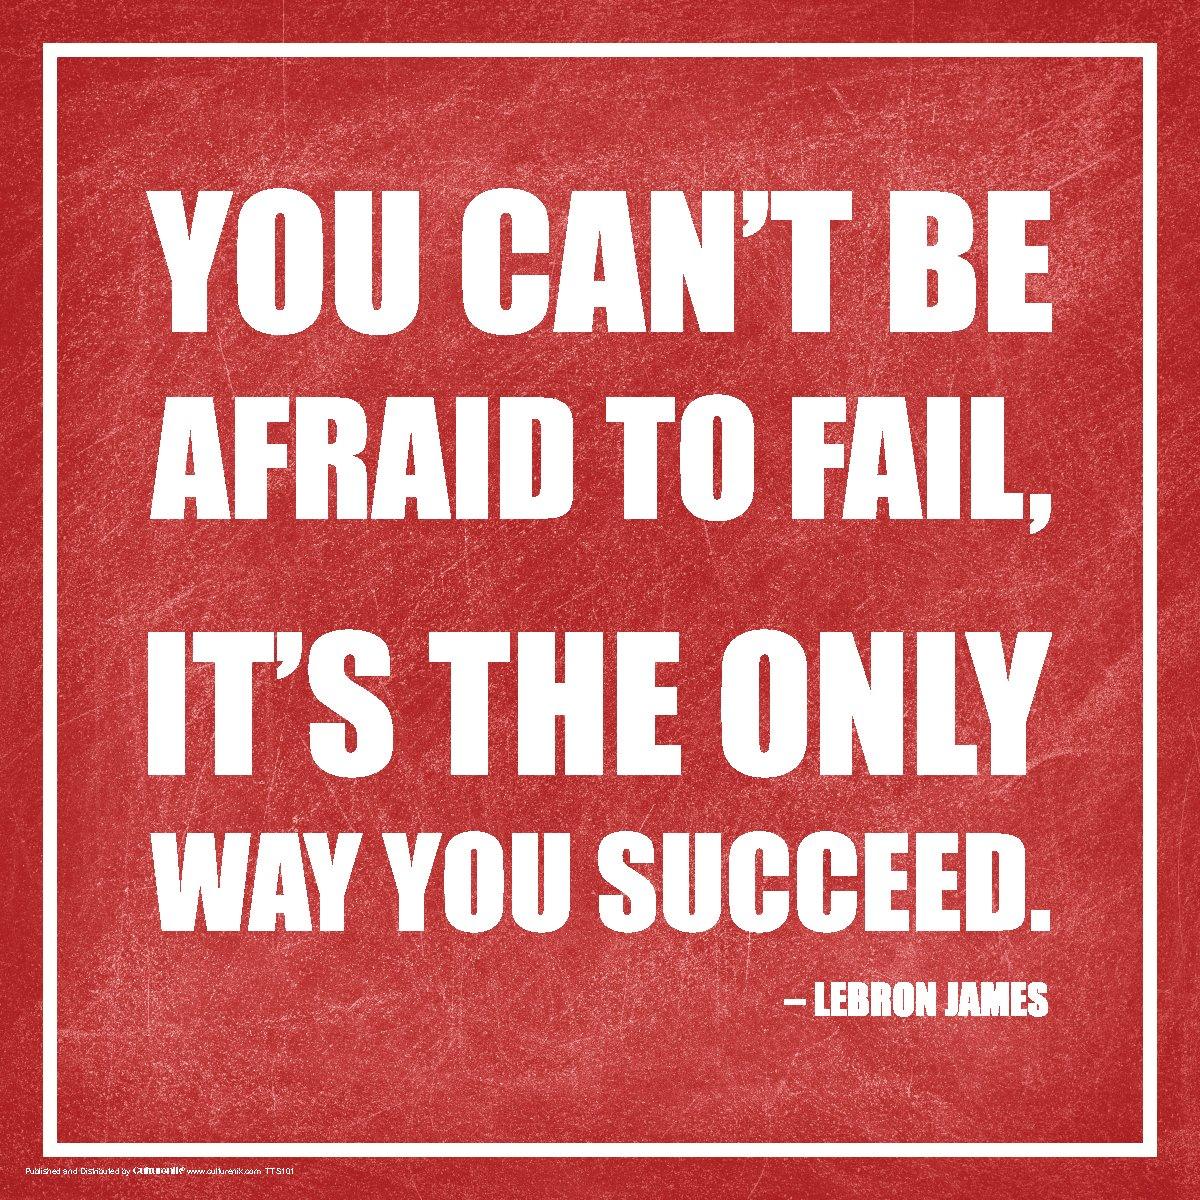 You can't be afraid to fail